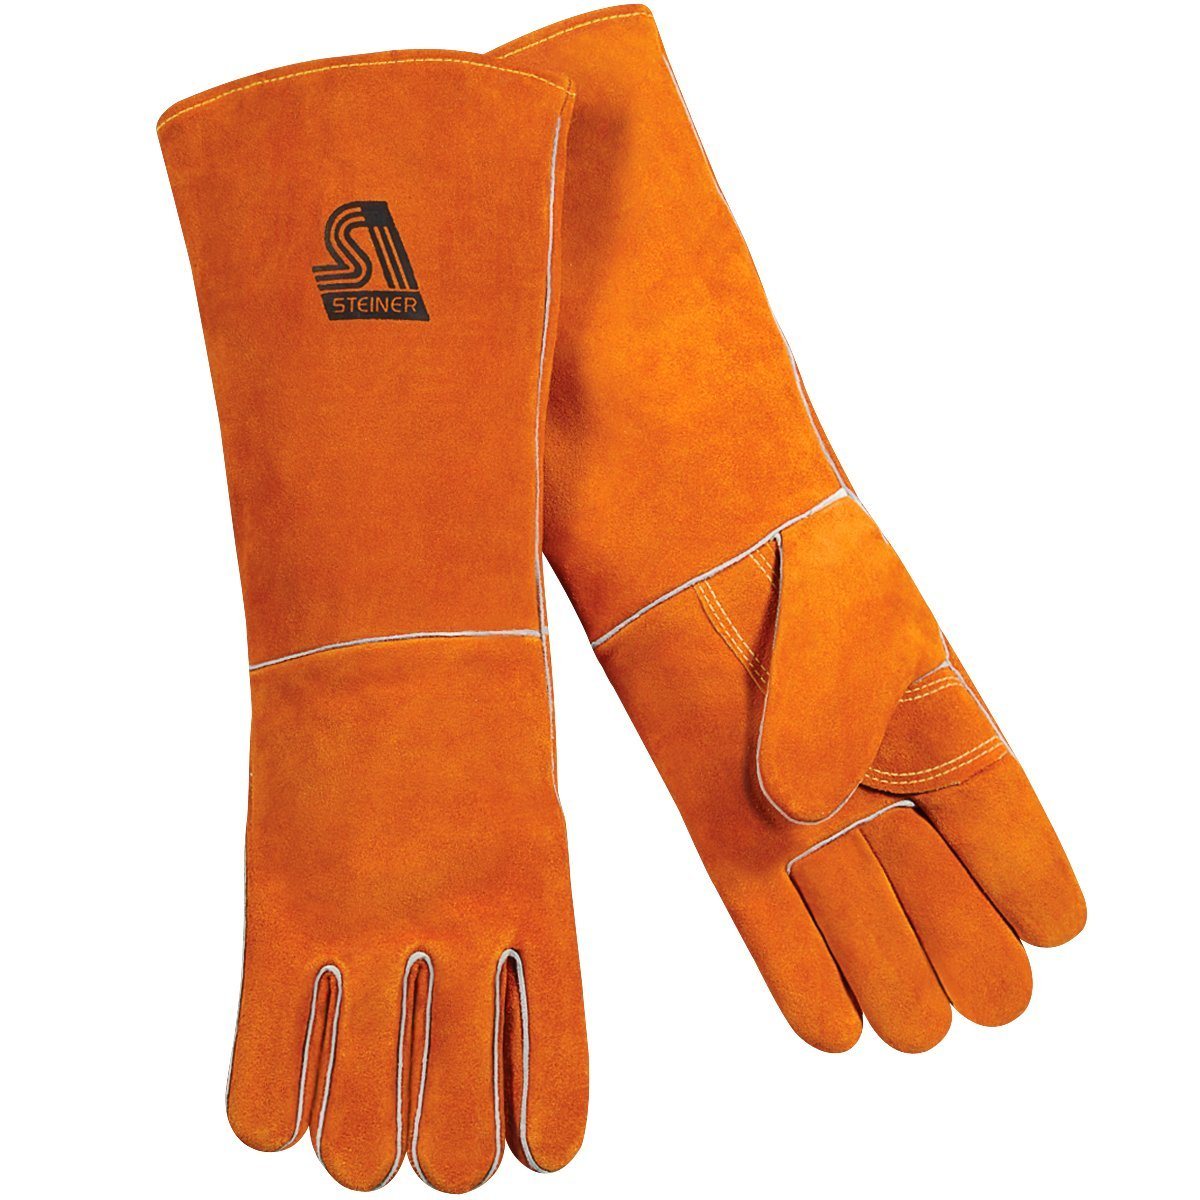 Steiner 21923-L Welding Gloves, Burnt orange Y-Series 23-Inch Length Shoulder Split Cowhide, Foam Lined, Large